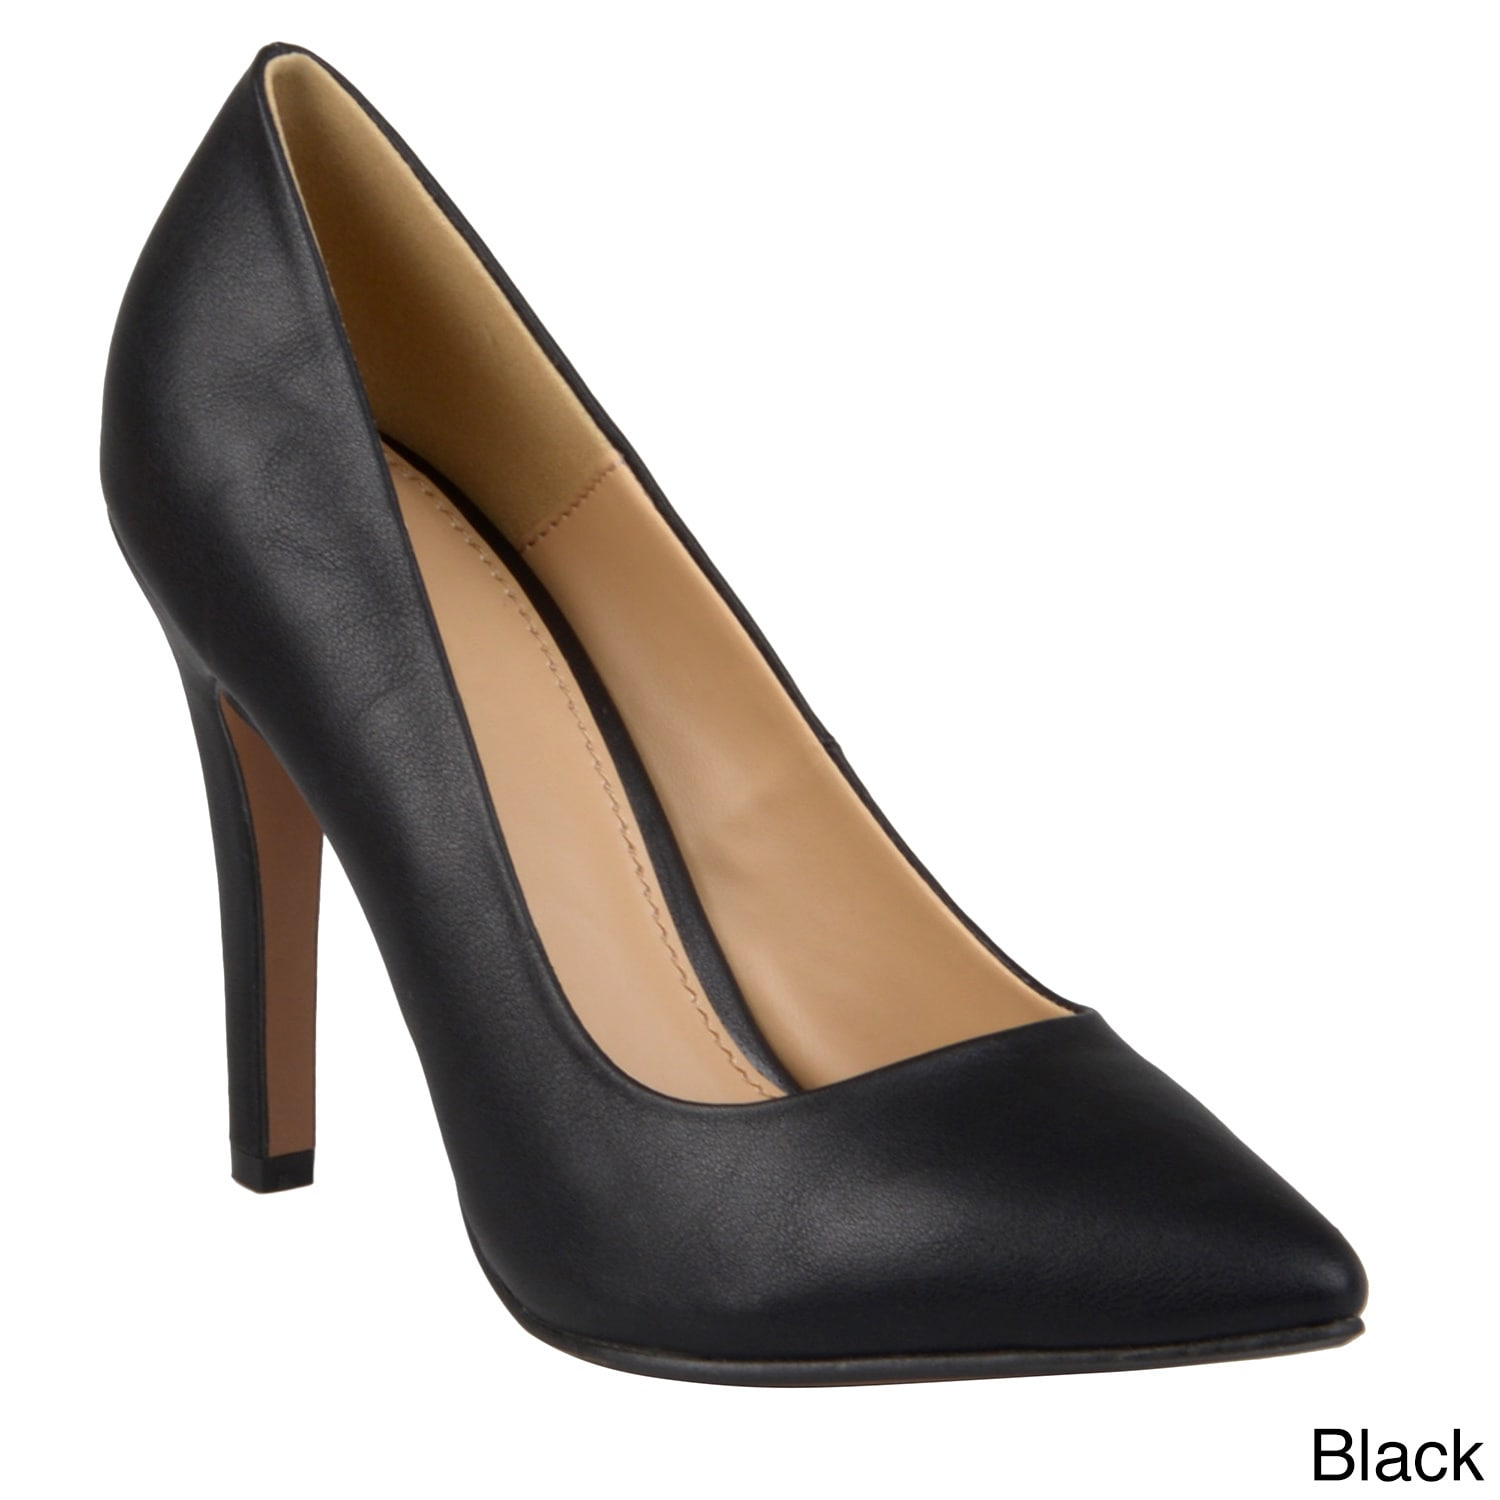 707cb3c1a3 Shop Journee Collection Women's 'Yoko-m' Pointed Toe Matte Finish Pumps -  Free Shipping On Orders Over $45 - Overstock - 9181765